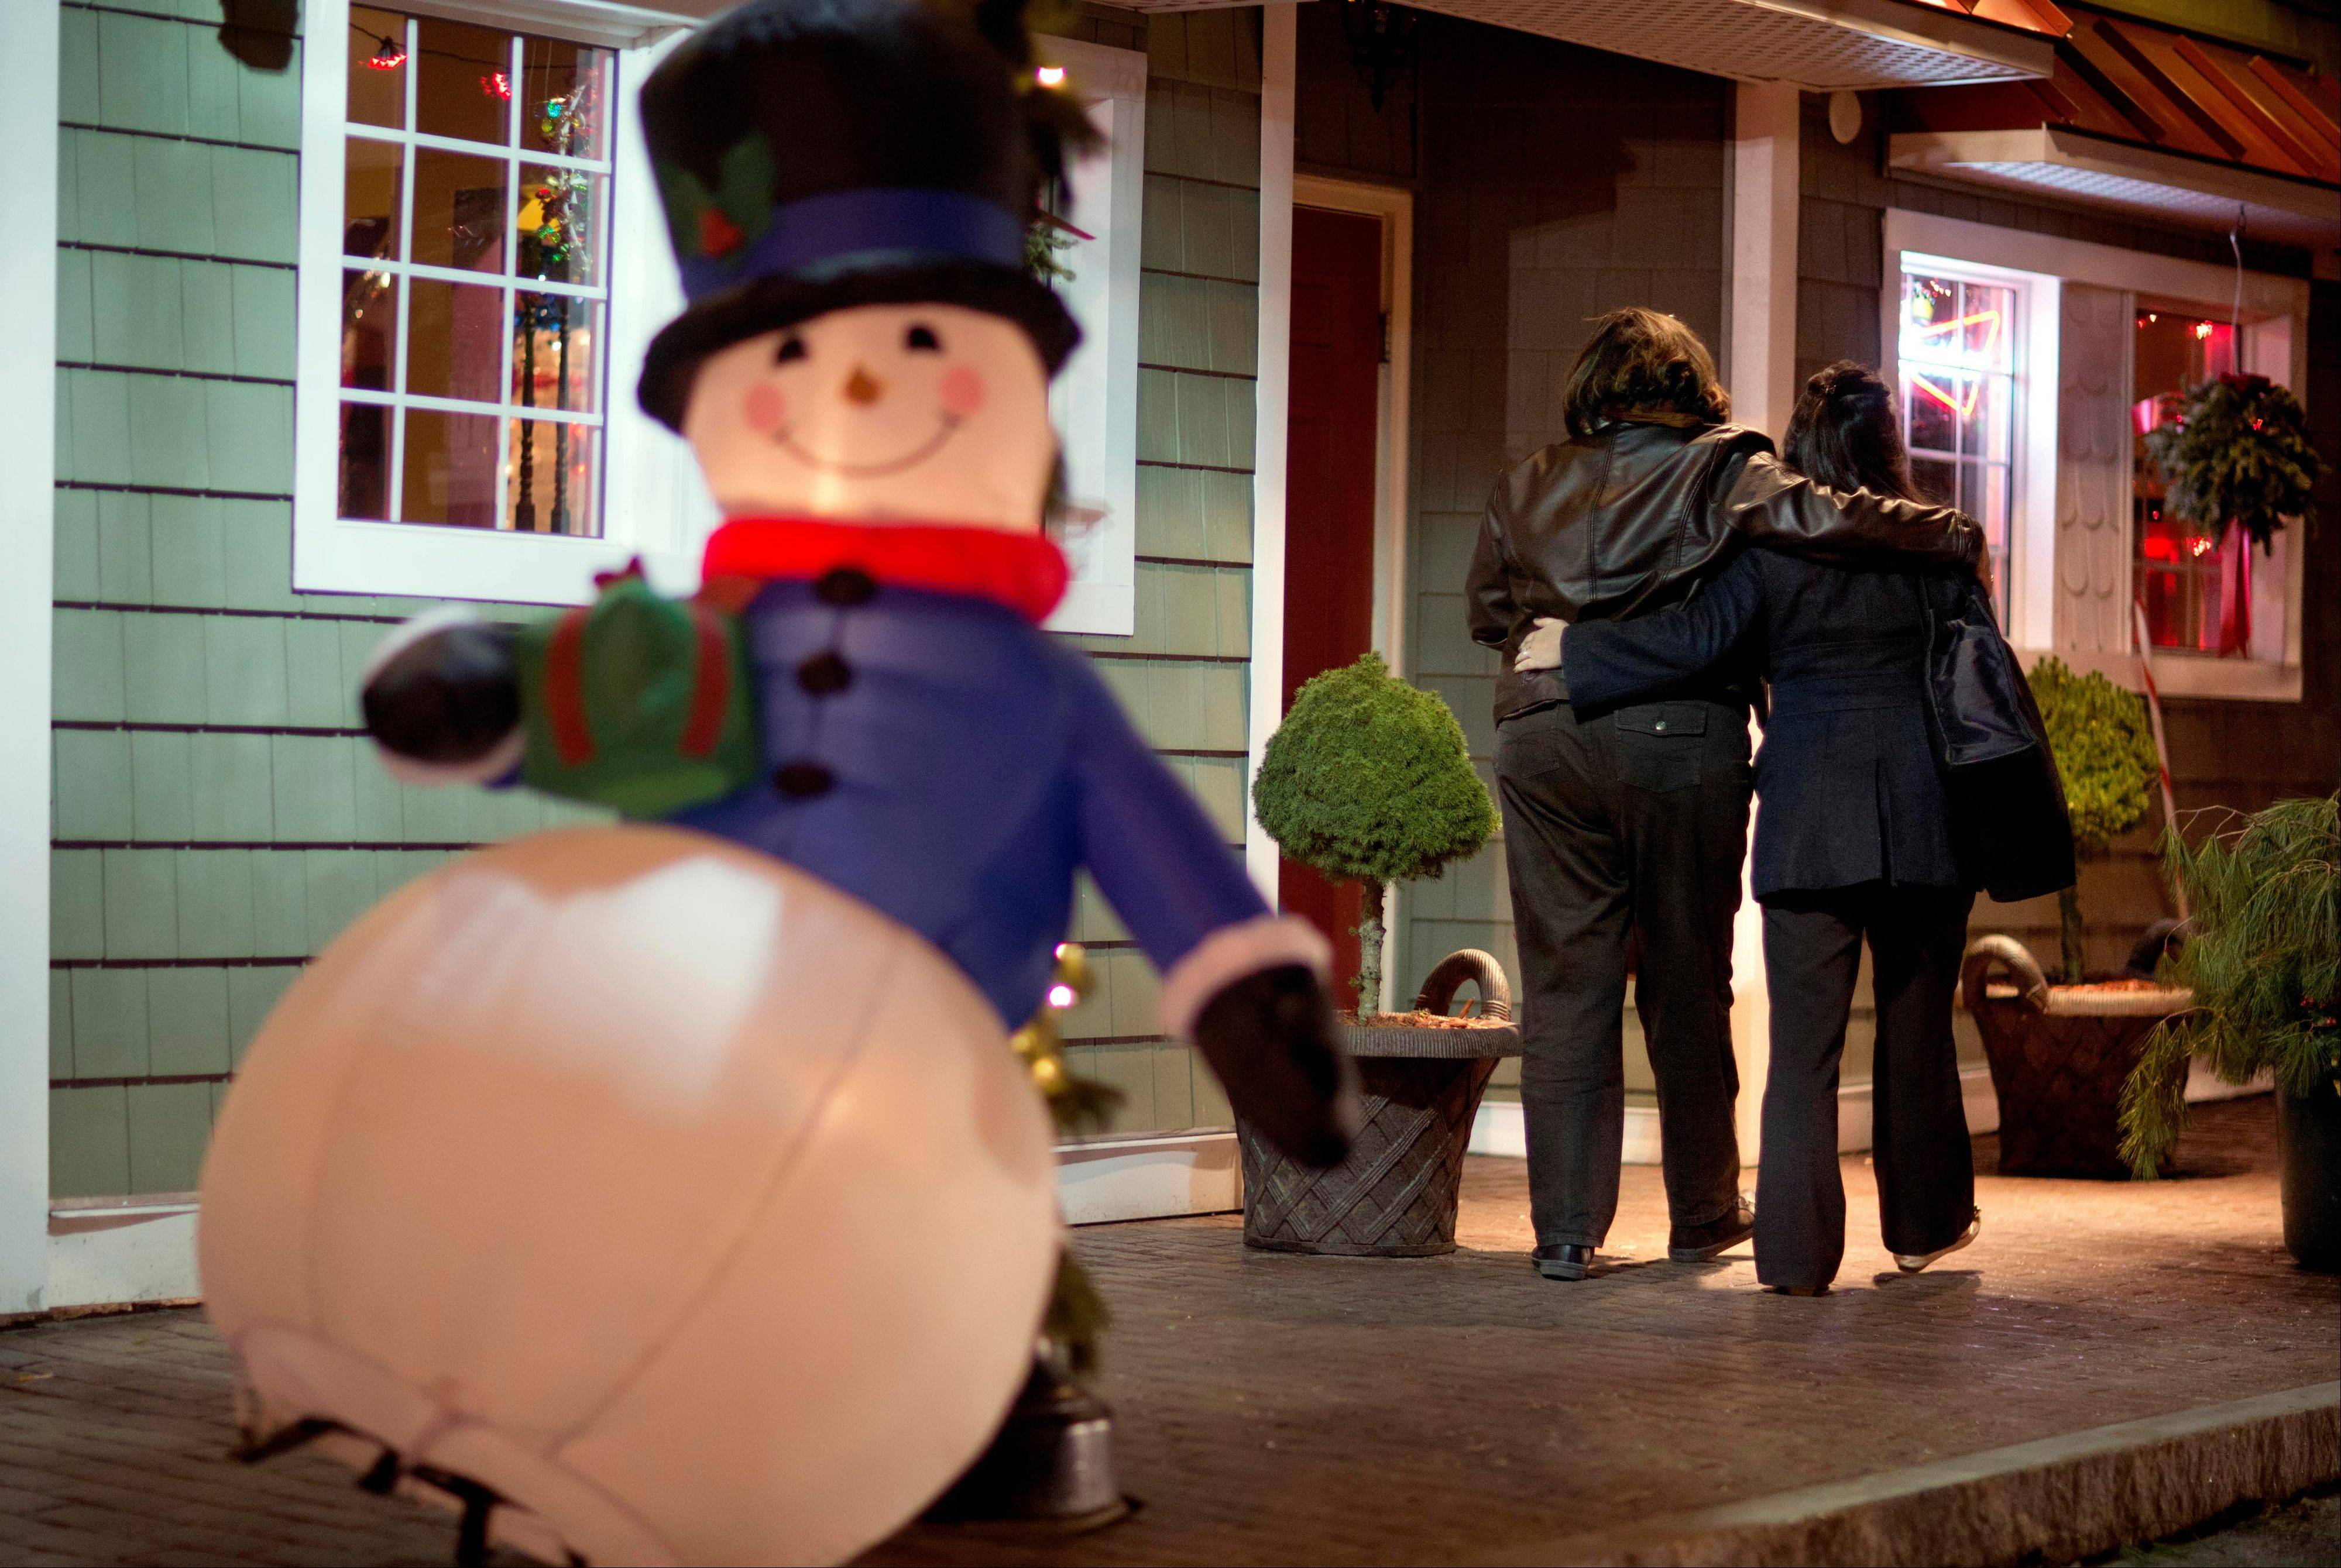 In this Dec. 19, 2012 file photo, mourners walk past a Frosty the Snowman Christmas decoration after visiting a memorial for the Sandy Hook Elementary School shooting victims, in Newtown, Conn. In the wake of the shooting, the grieving town is trying to find meaning in Christmas. (AP Photo/David Goldman, File)